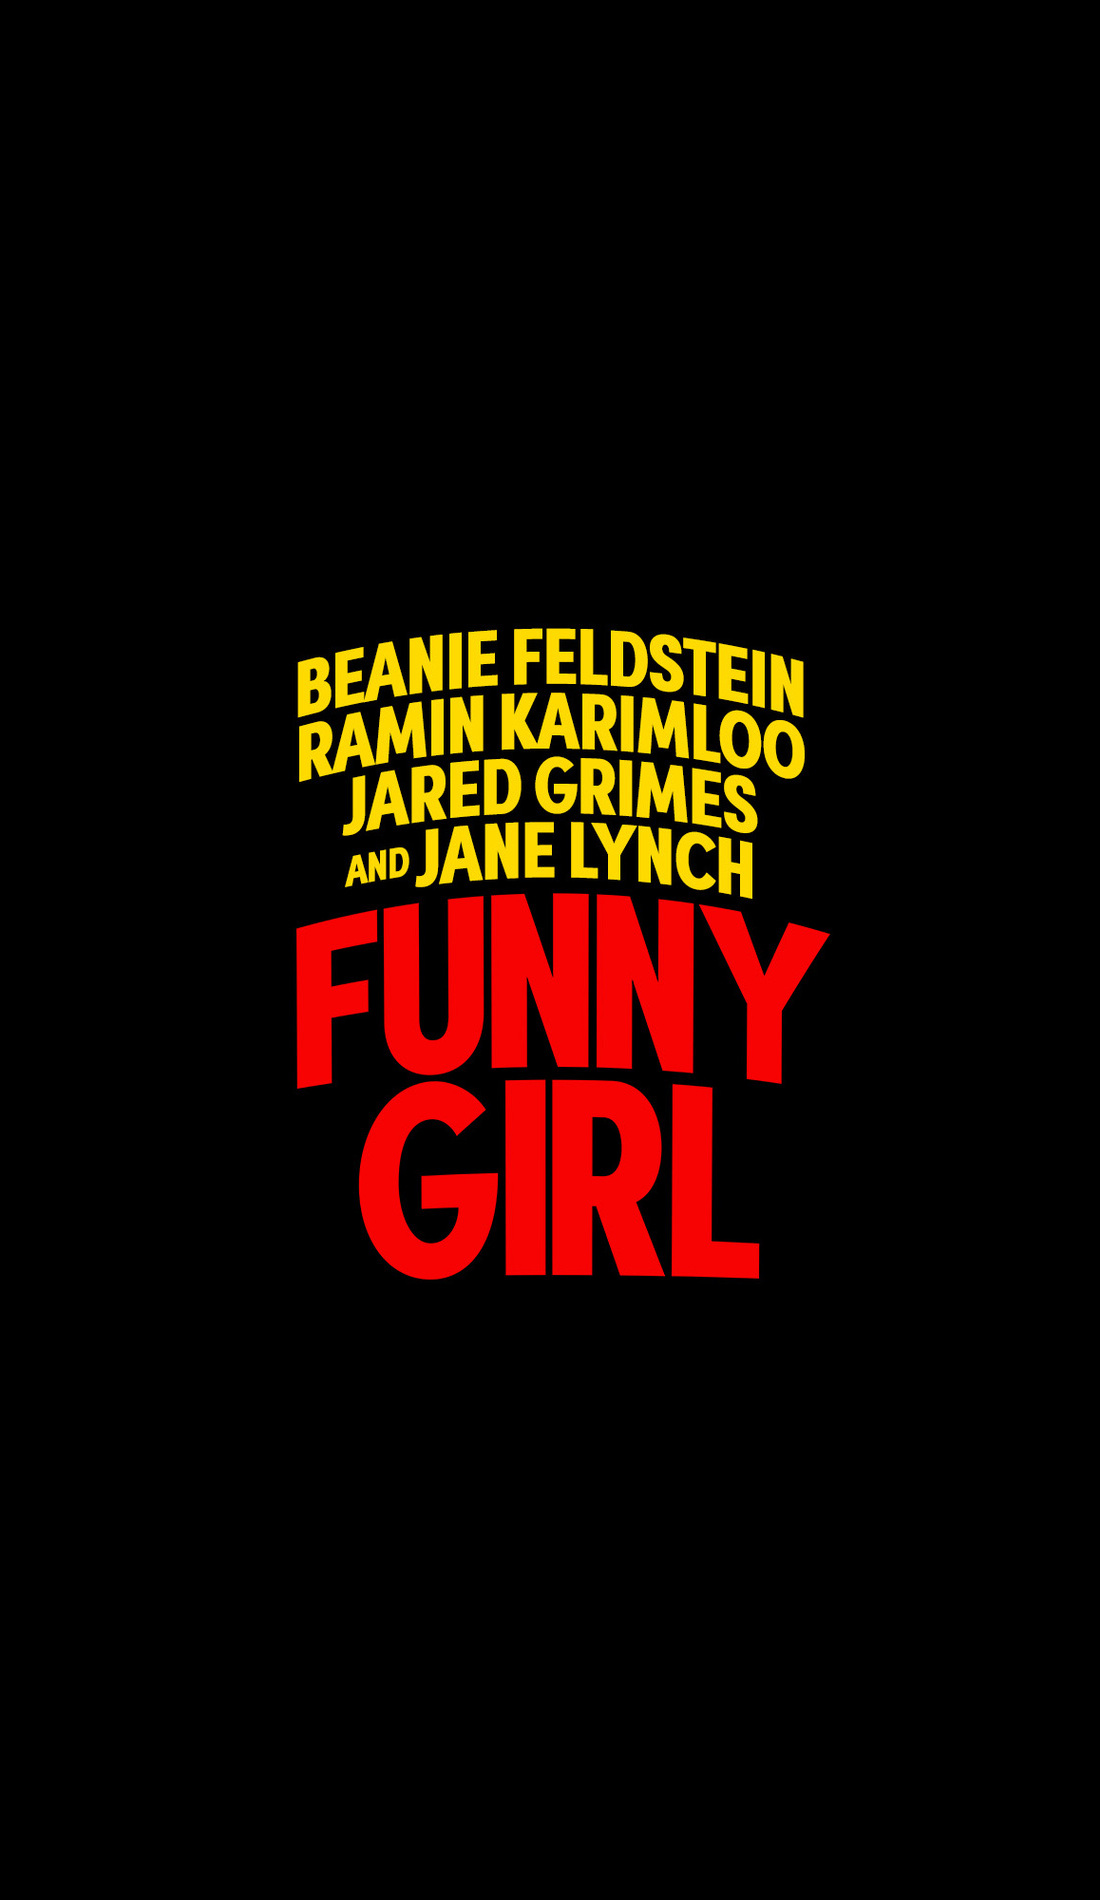 A Funny Girl live event